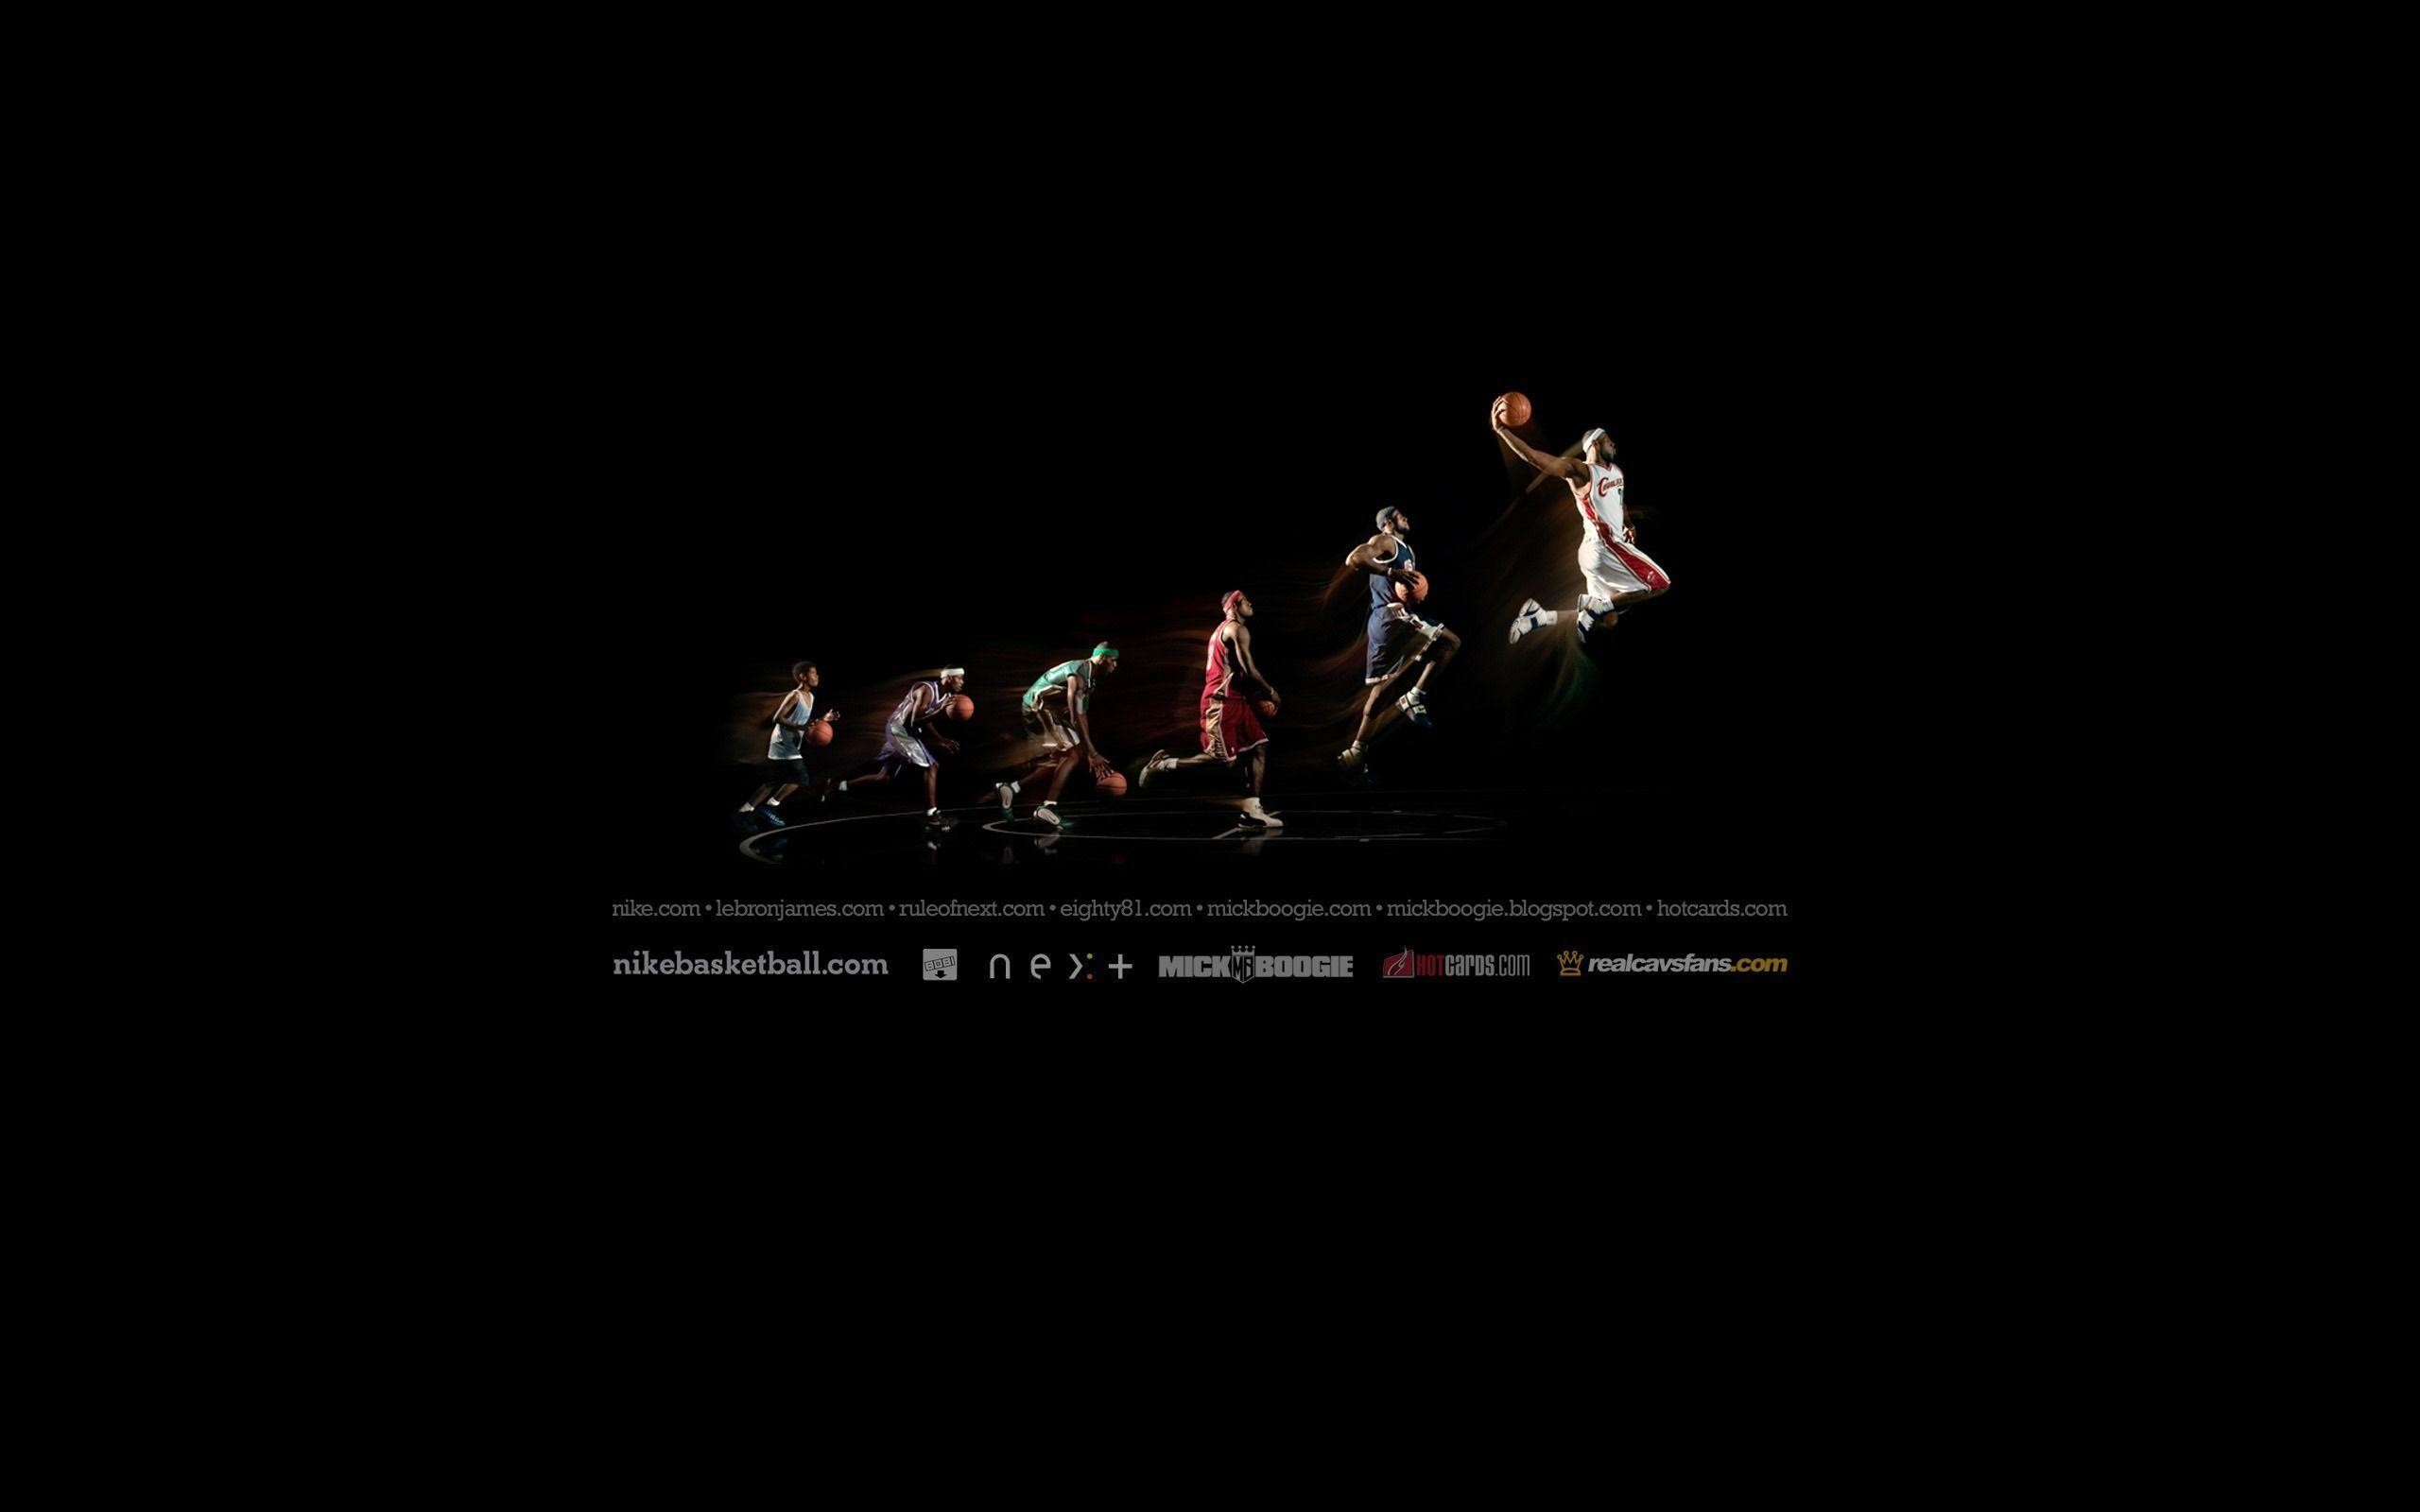 Hd Basketball Wallpapers Wallpapertag